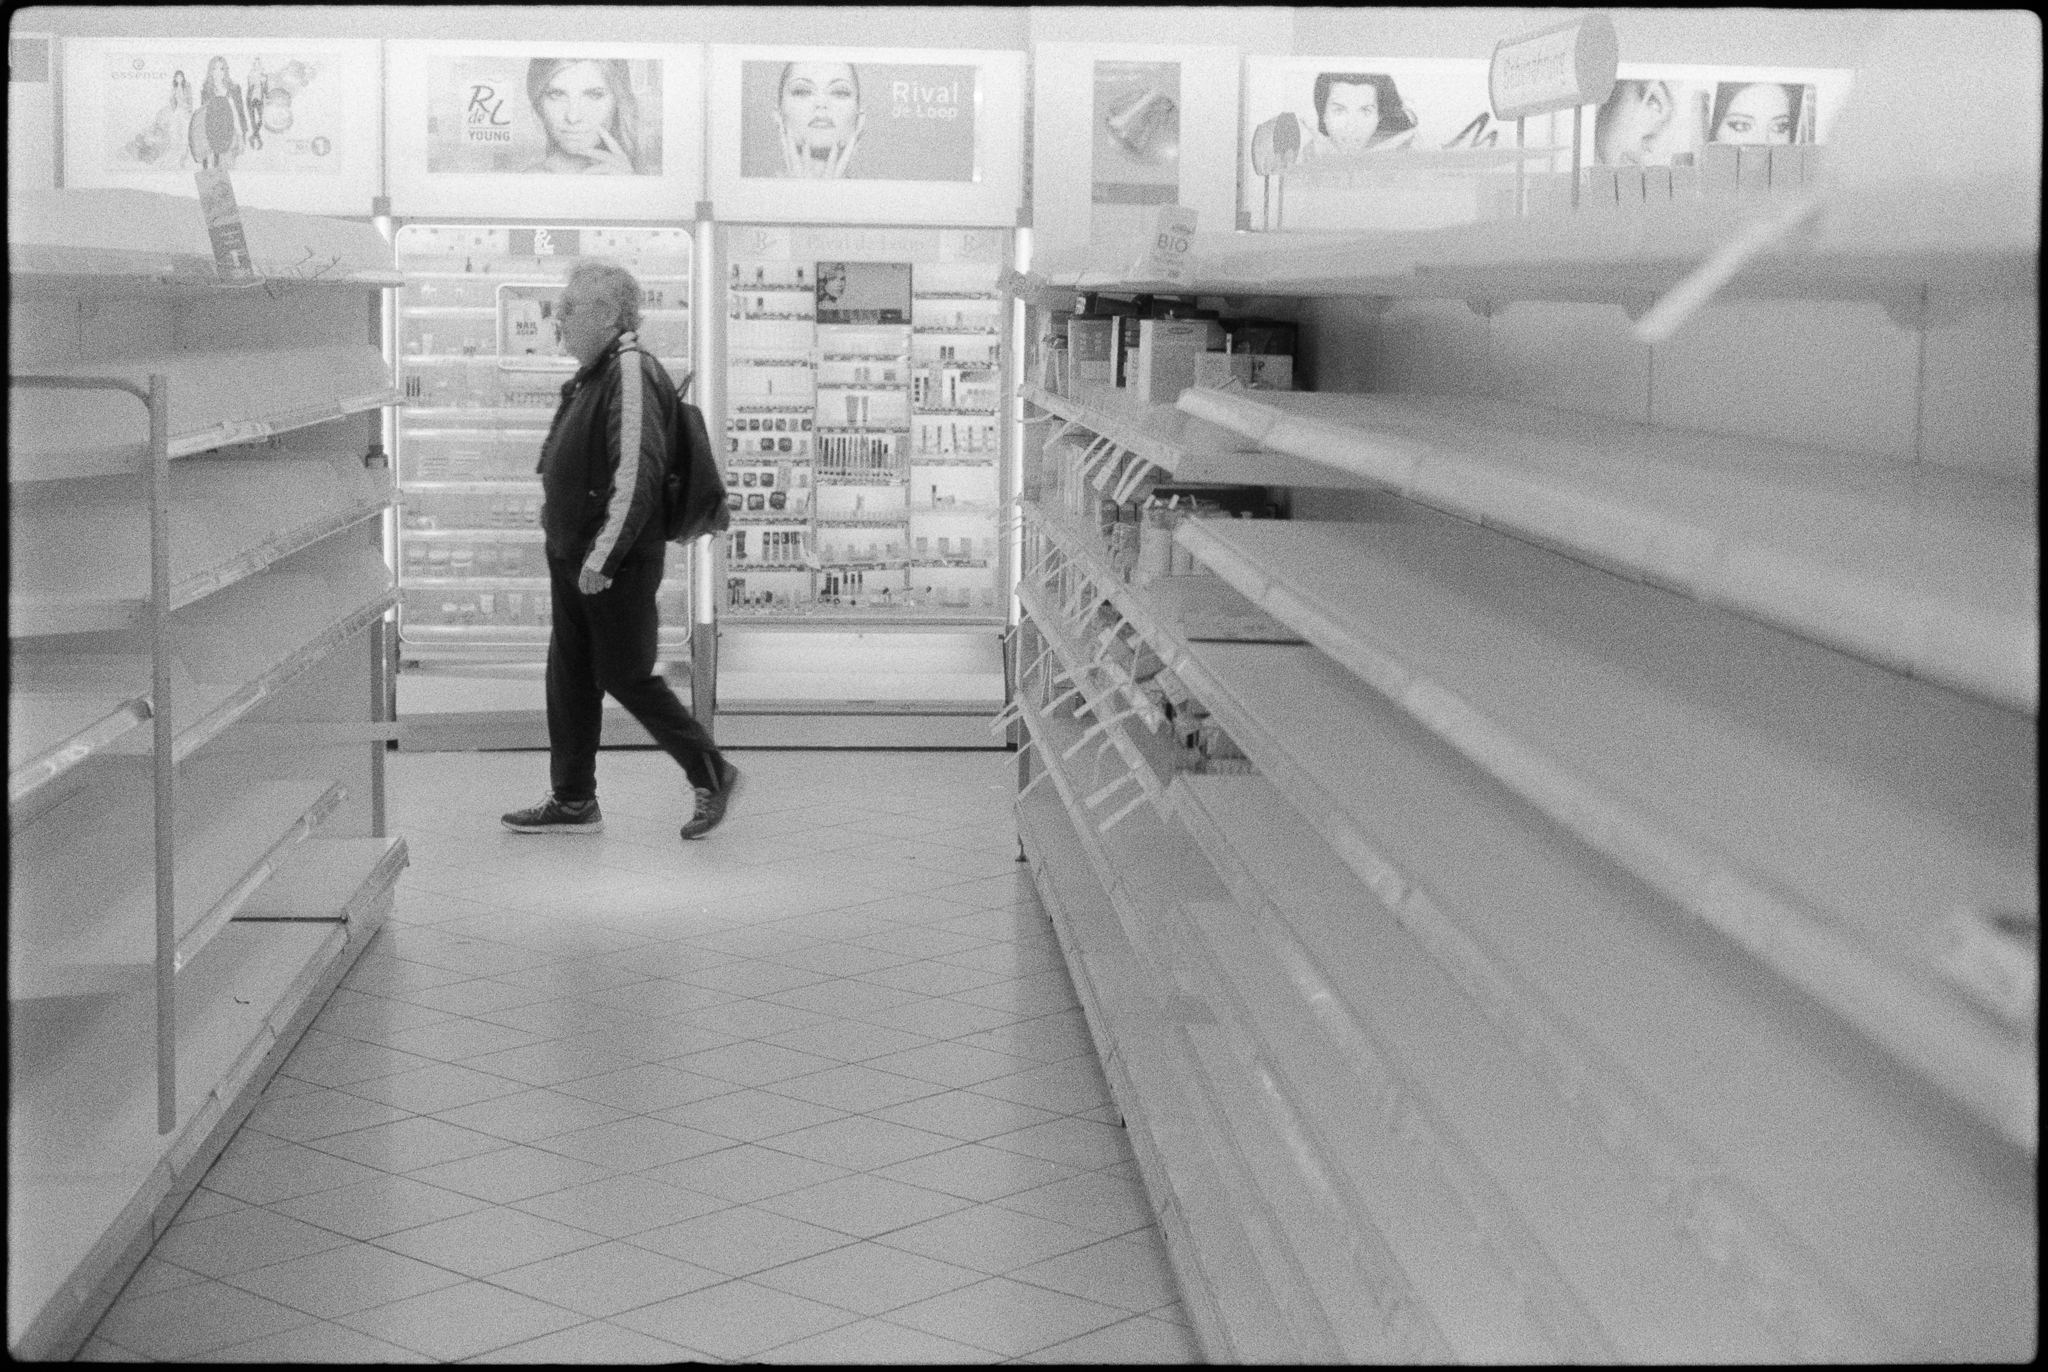 Some more empty shelves during a fire sale in the drugstore on Wandsbeker Marktstraße. (2)